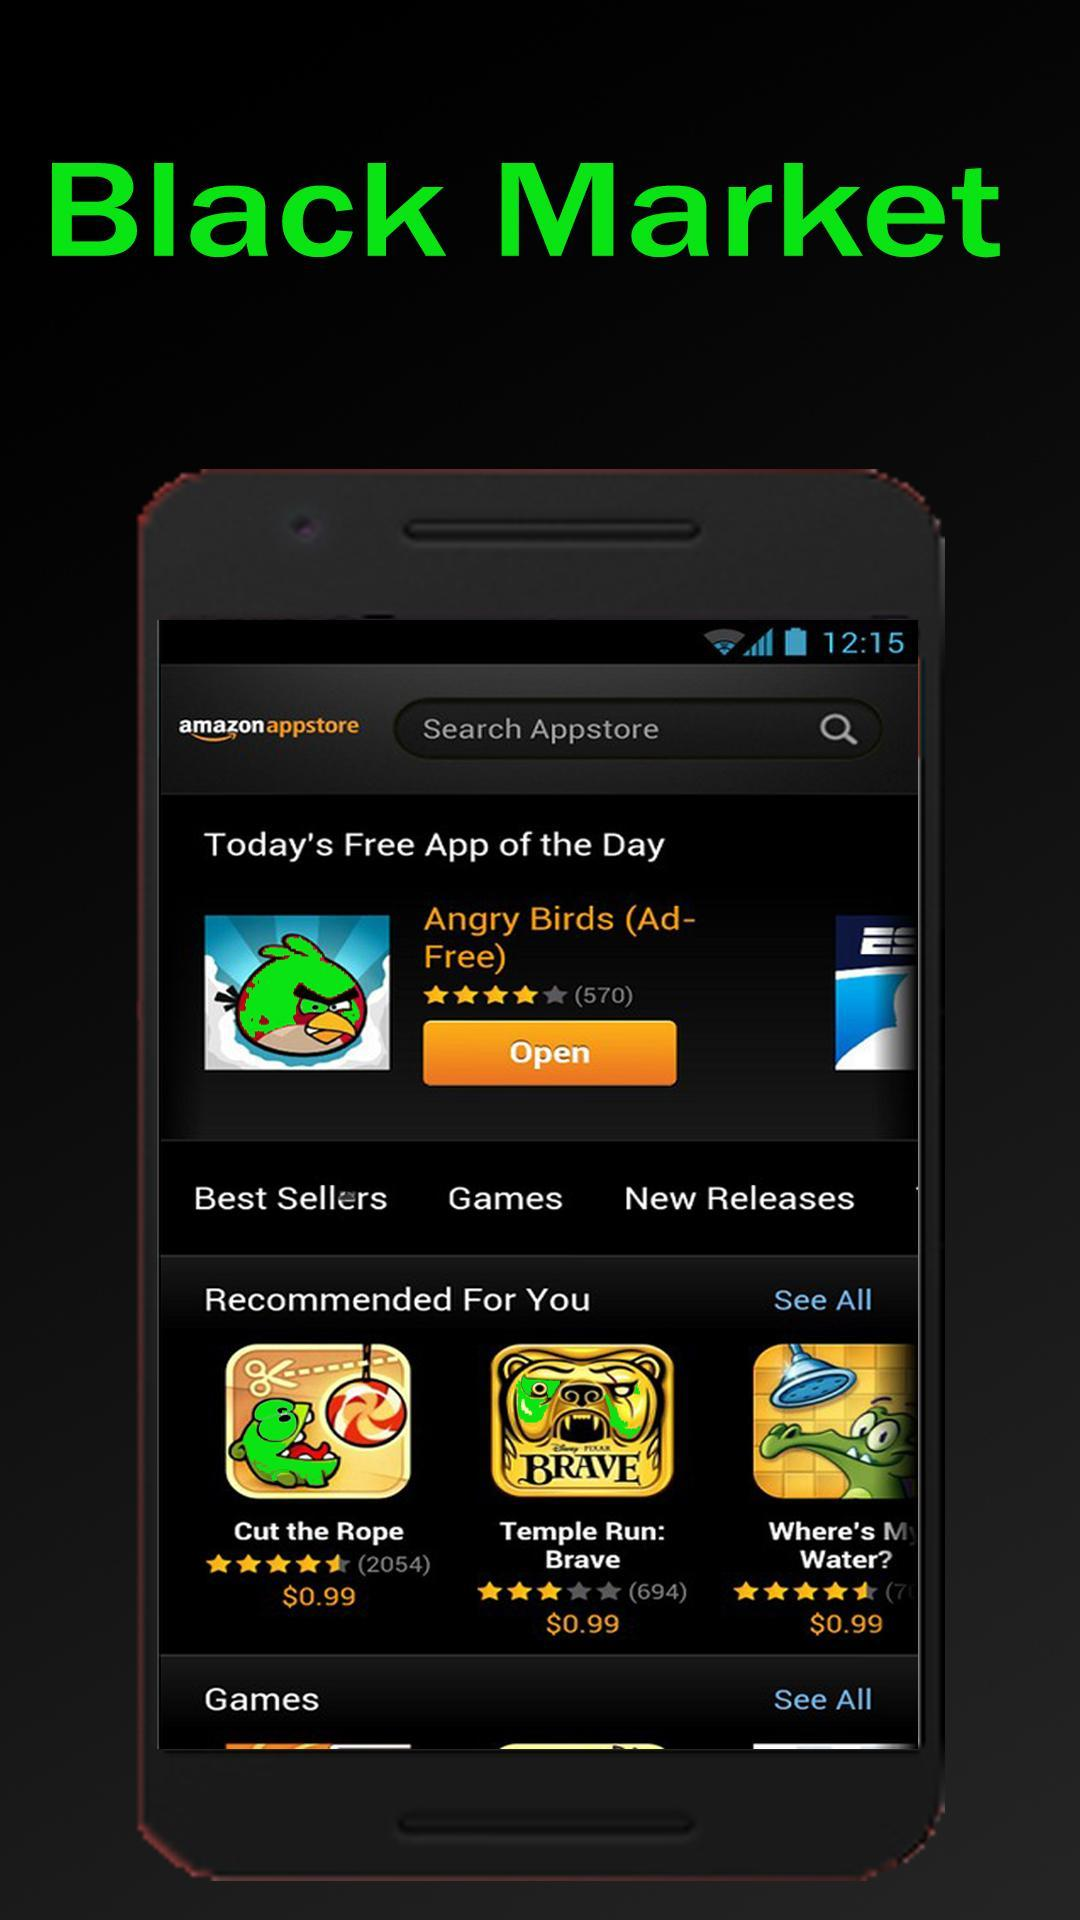 Black Mart App Guide for Android - APK Download